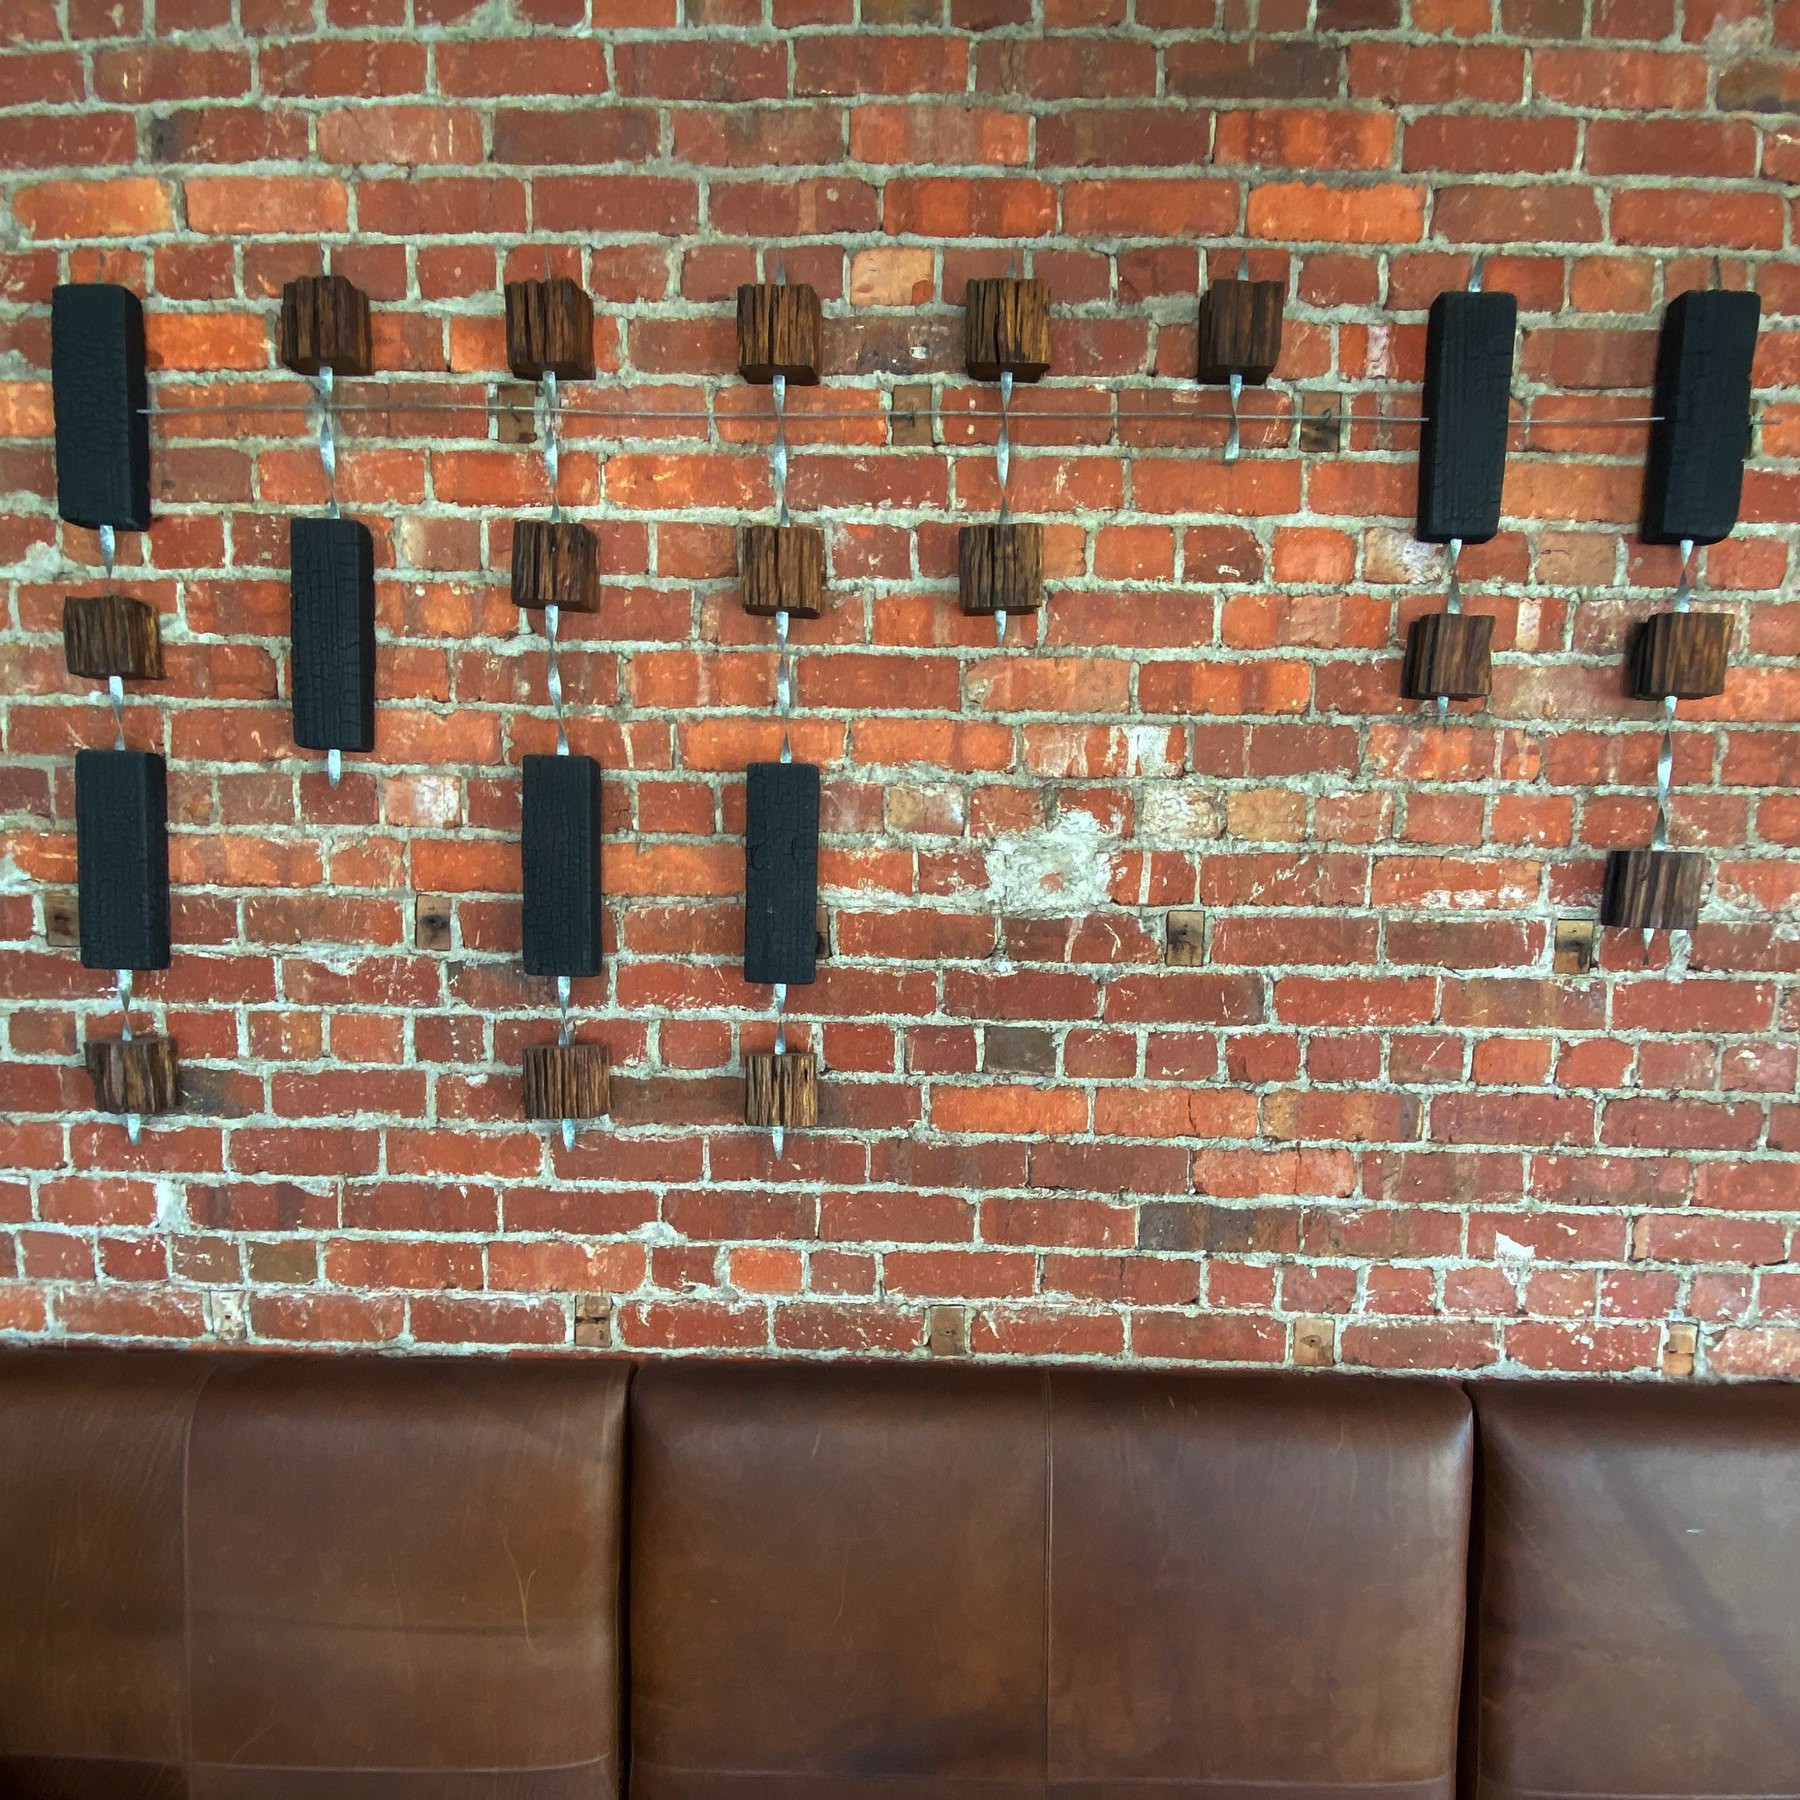 Wooden blocks hanging on a wall